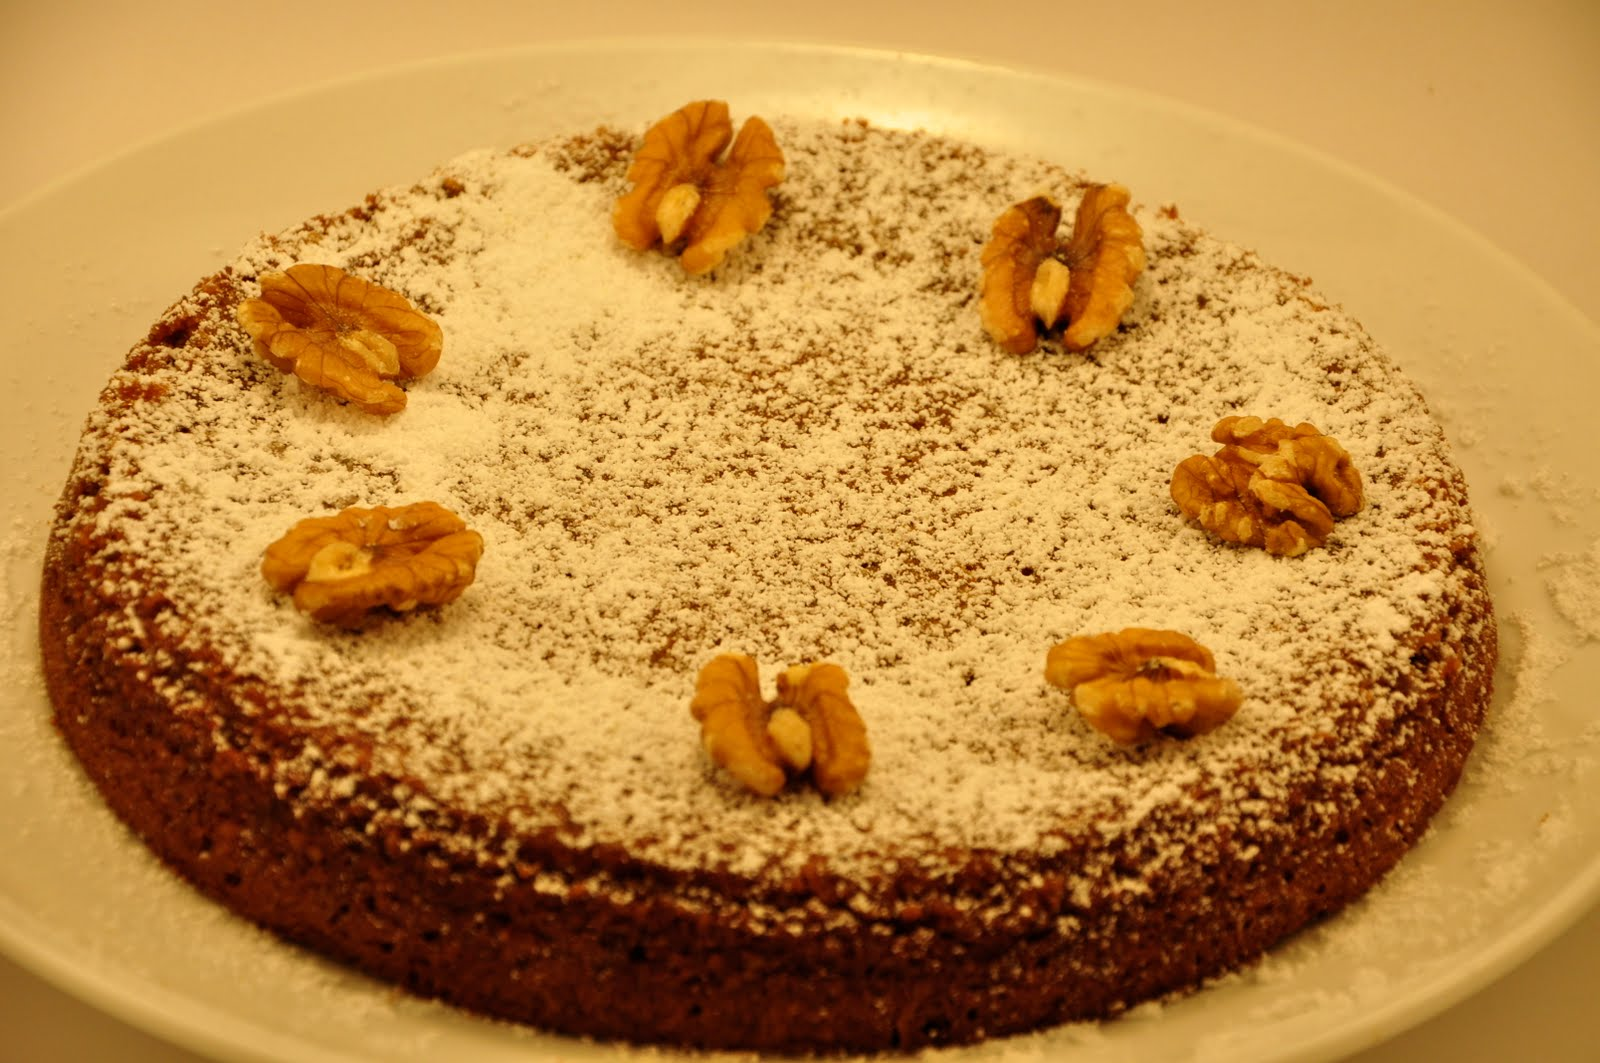 BAKE IT OFF: French Perigordine Walnut Cake